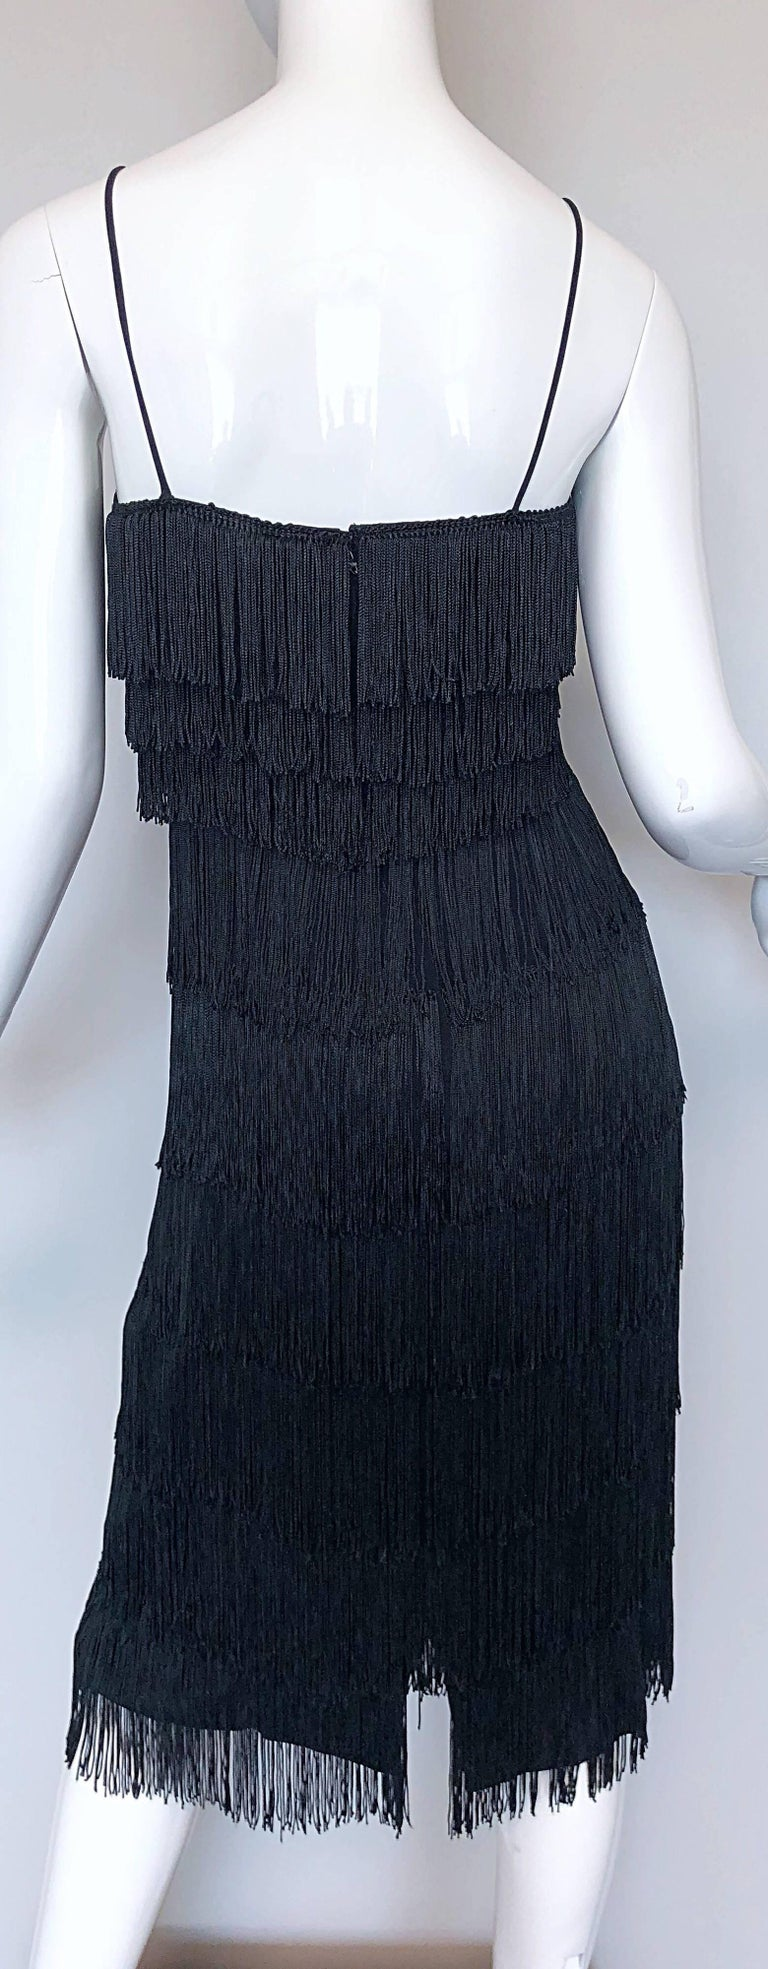 Women's 1970s Lilli Diamond Black Fully Fringed Vintage Flapper Style 70s Cocktail Dress For Sale